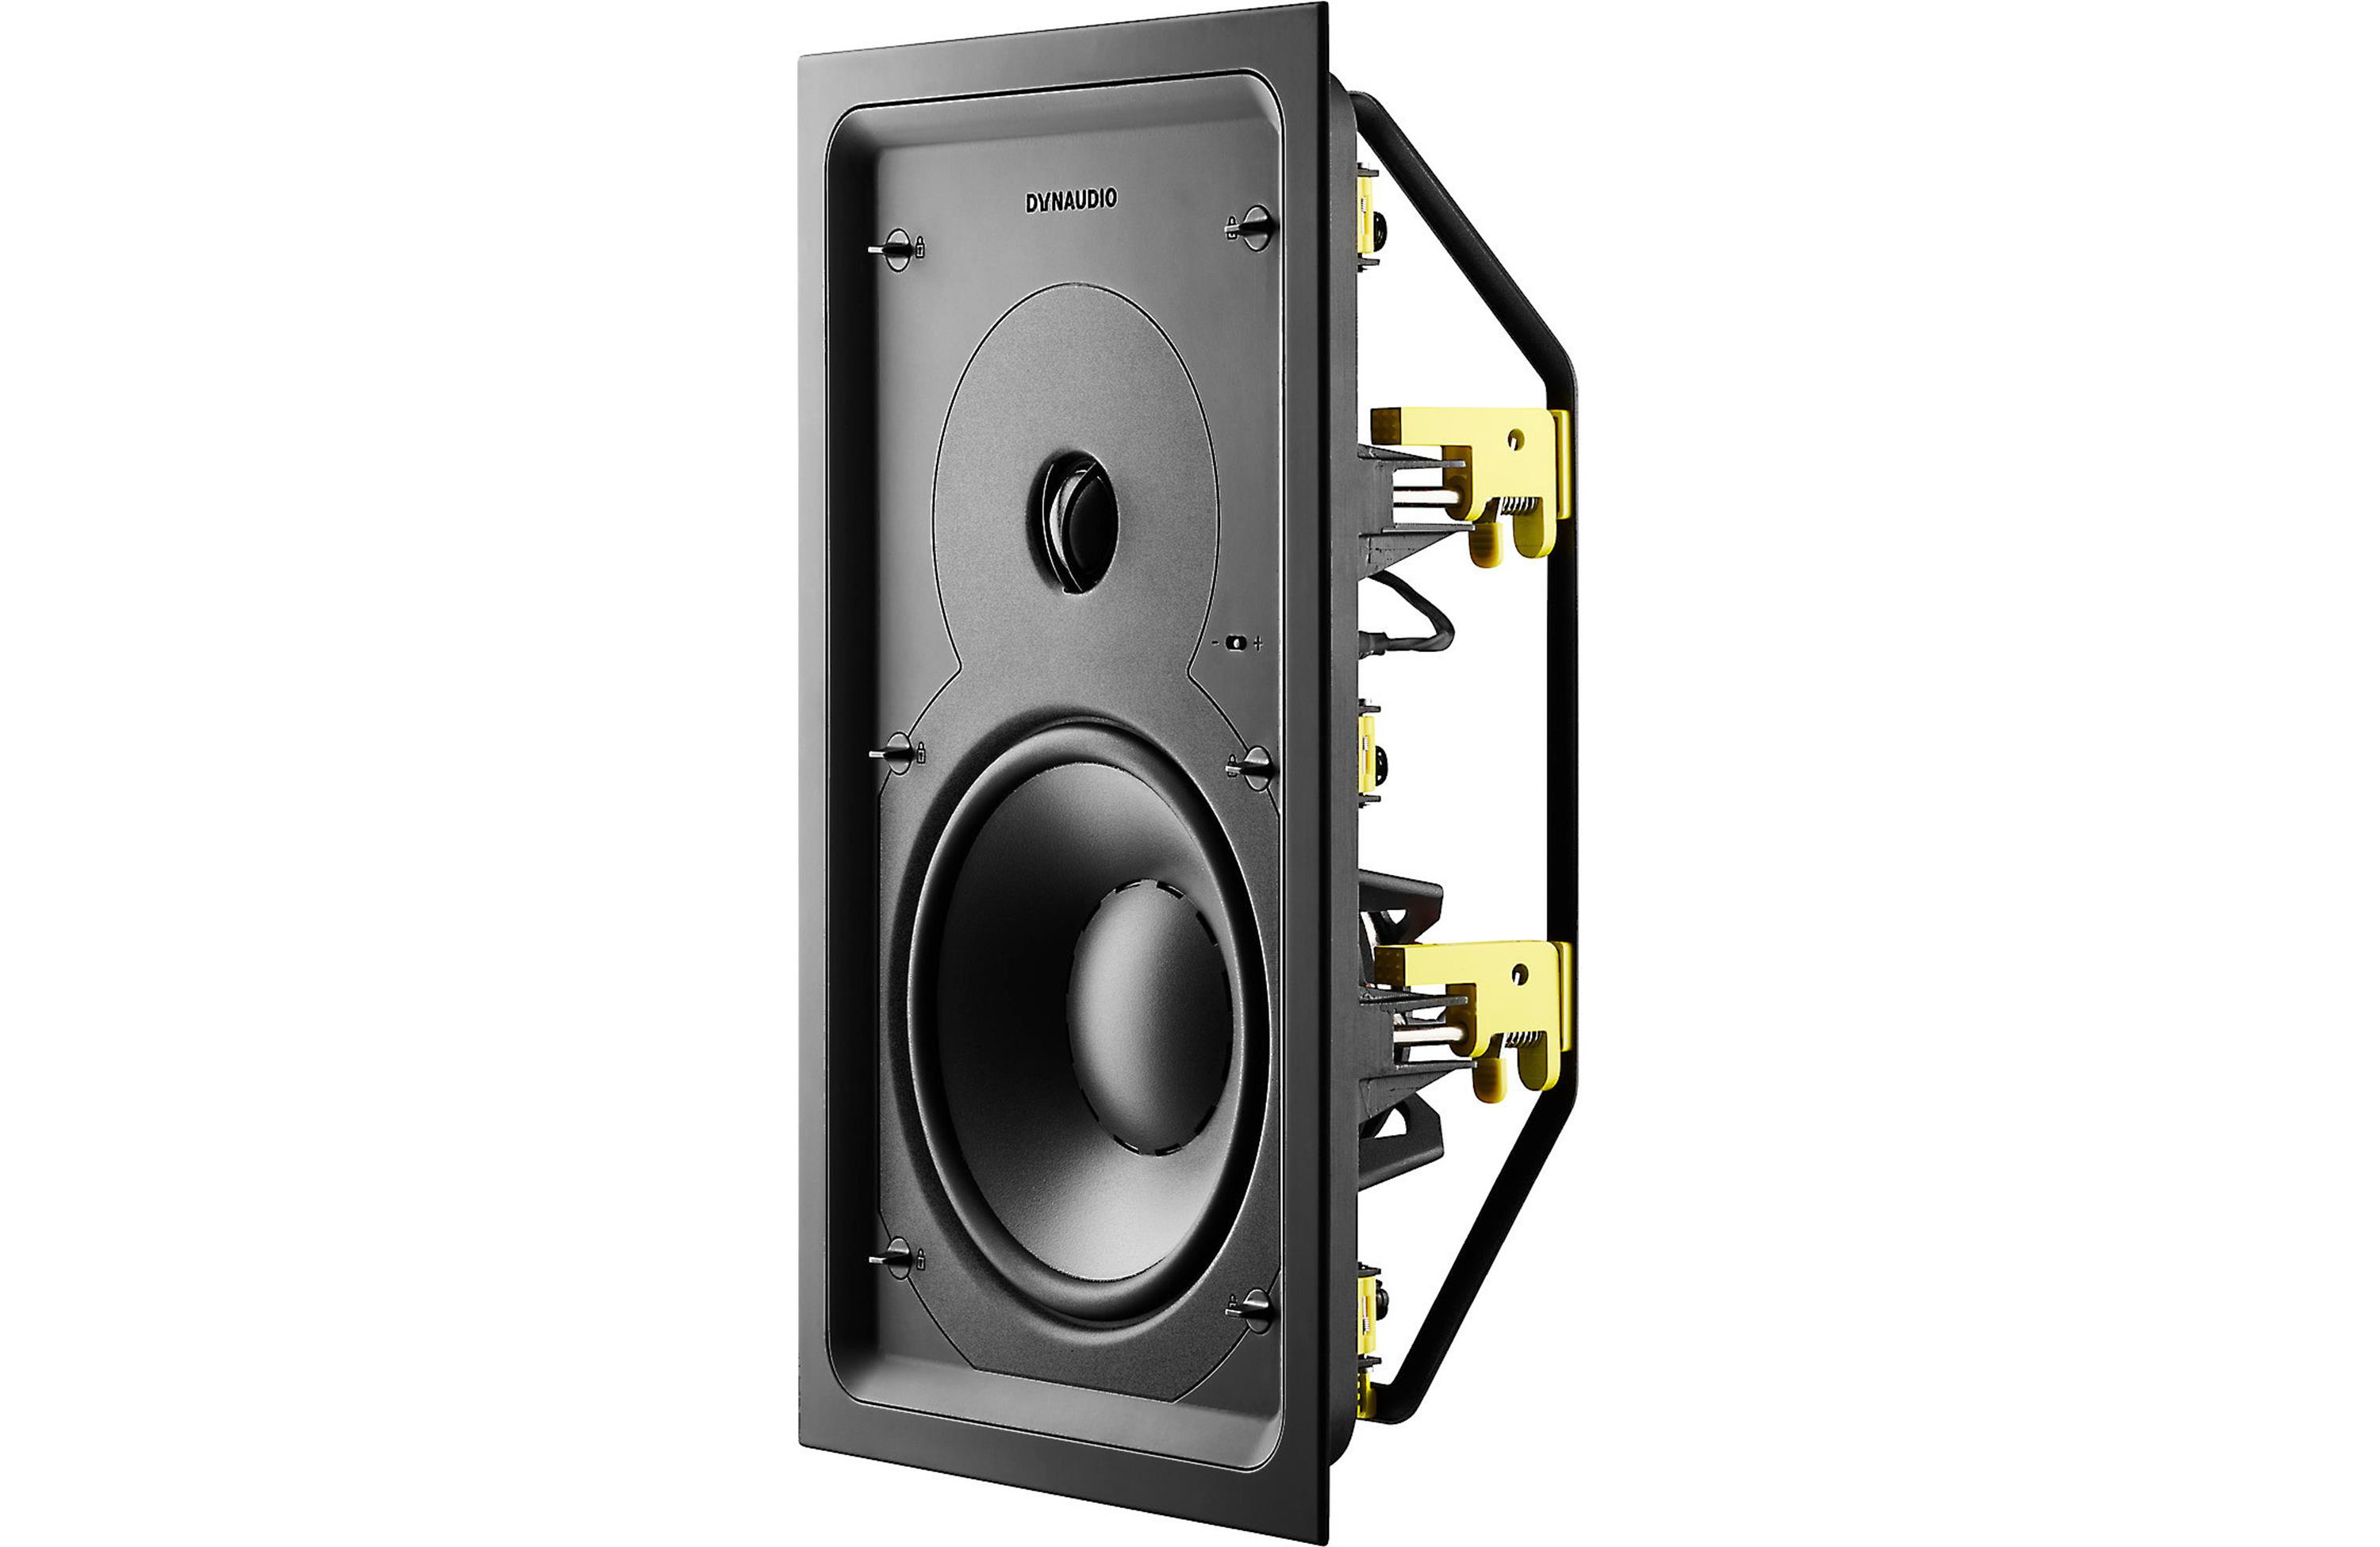 Dynaudio S4-W80 - High-end vestavný reproduktor do stěny